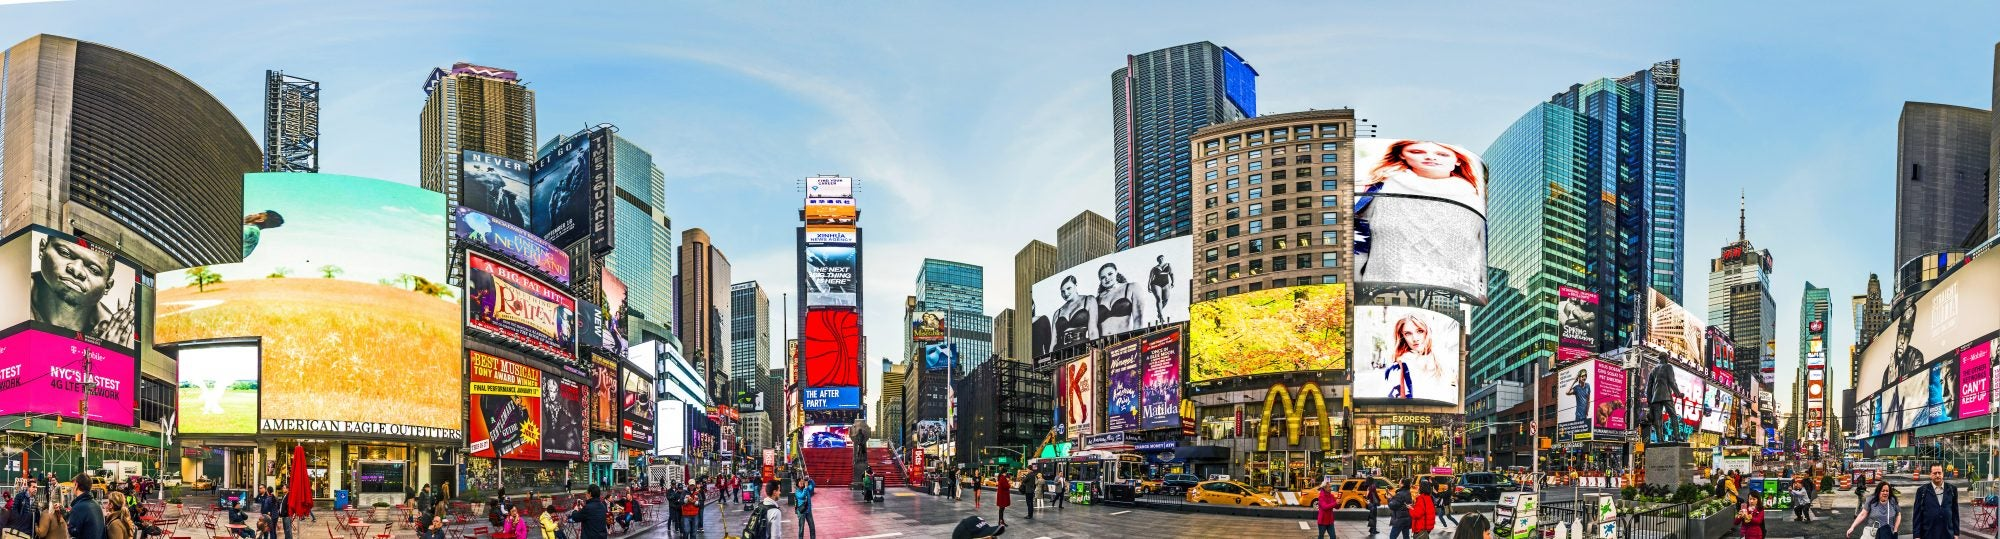 The Best Marriott Hotels in New York City With Points